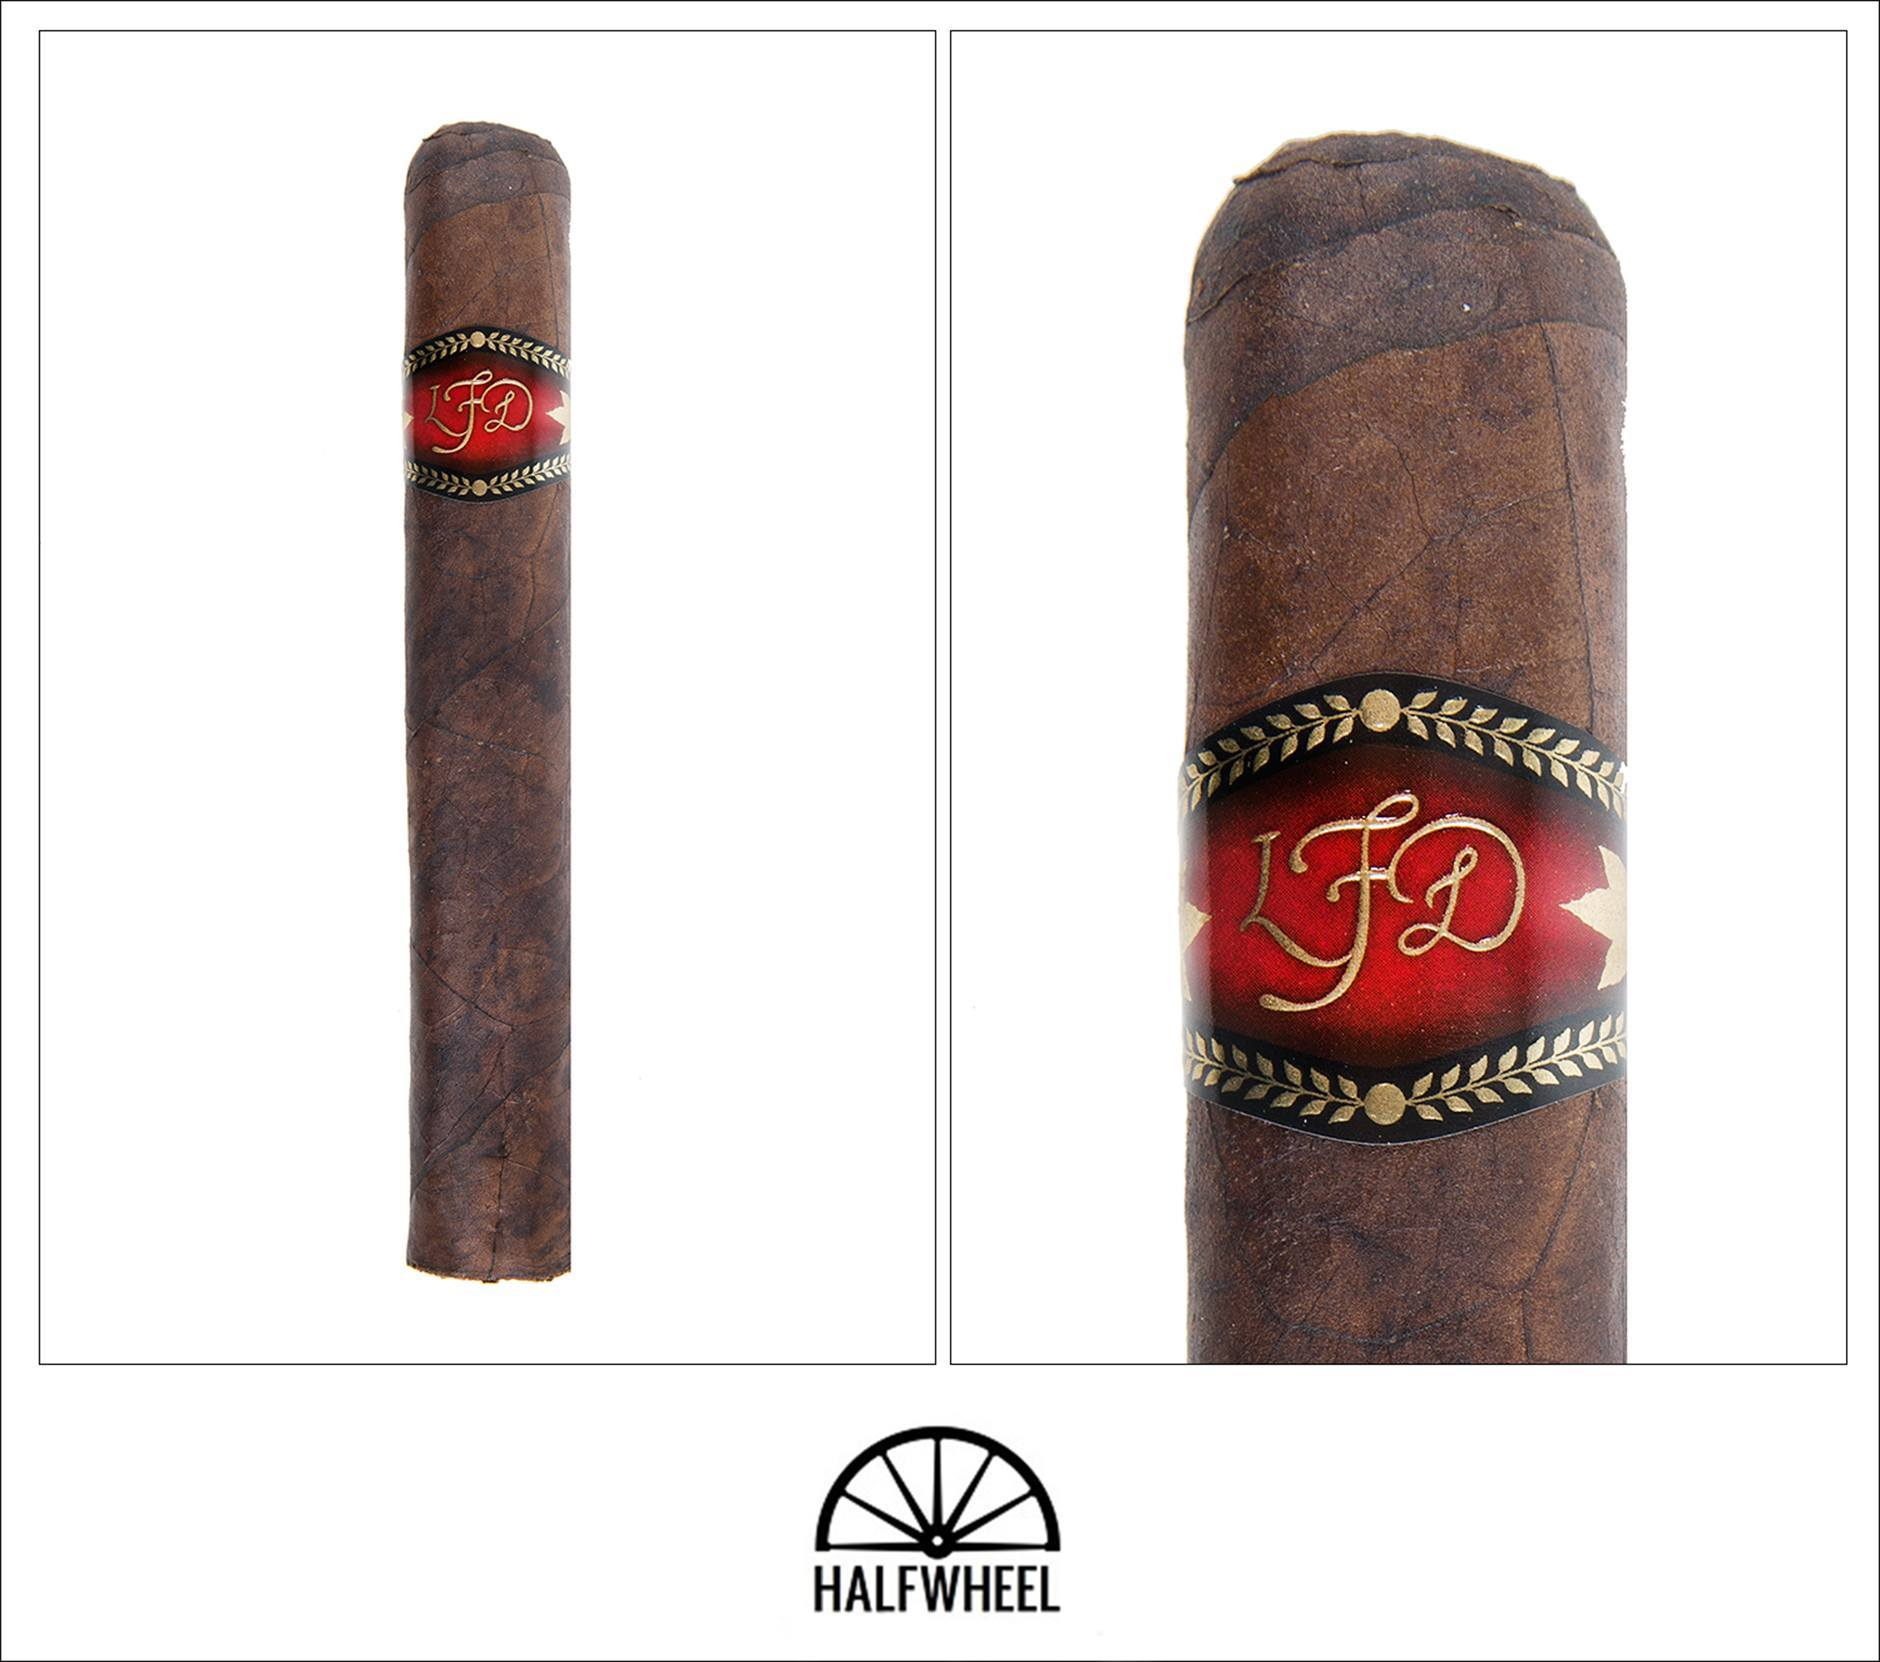 La Flor Dominicana Anthony s Cigar Emporium 20th Anniversary 1